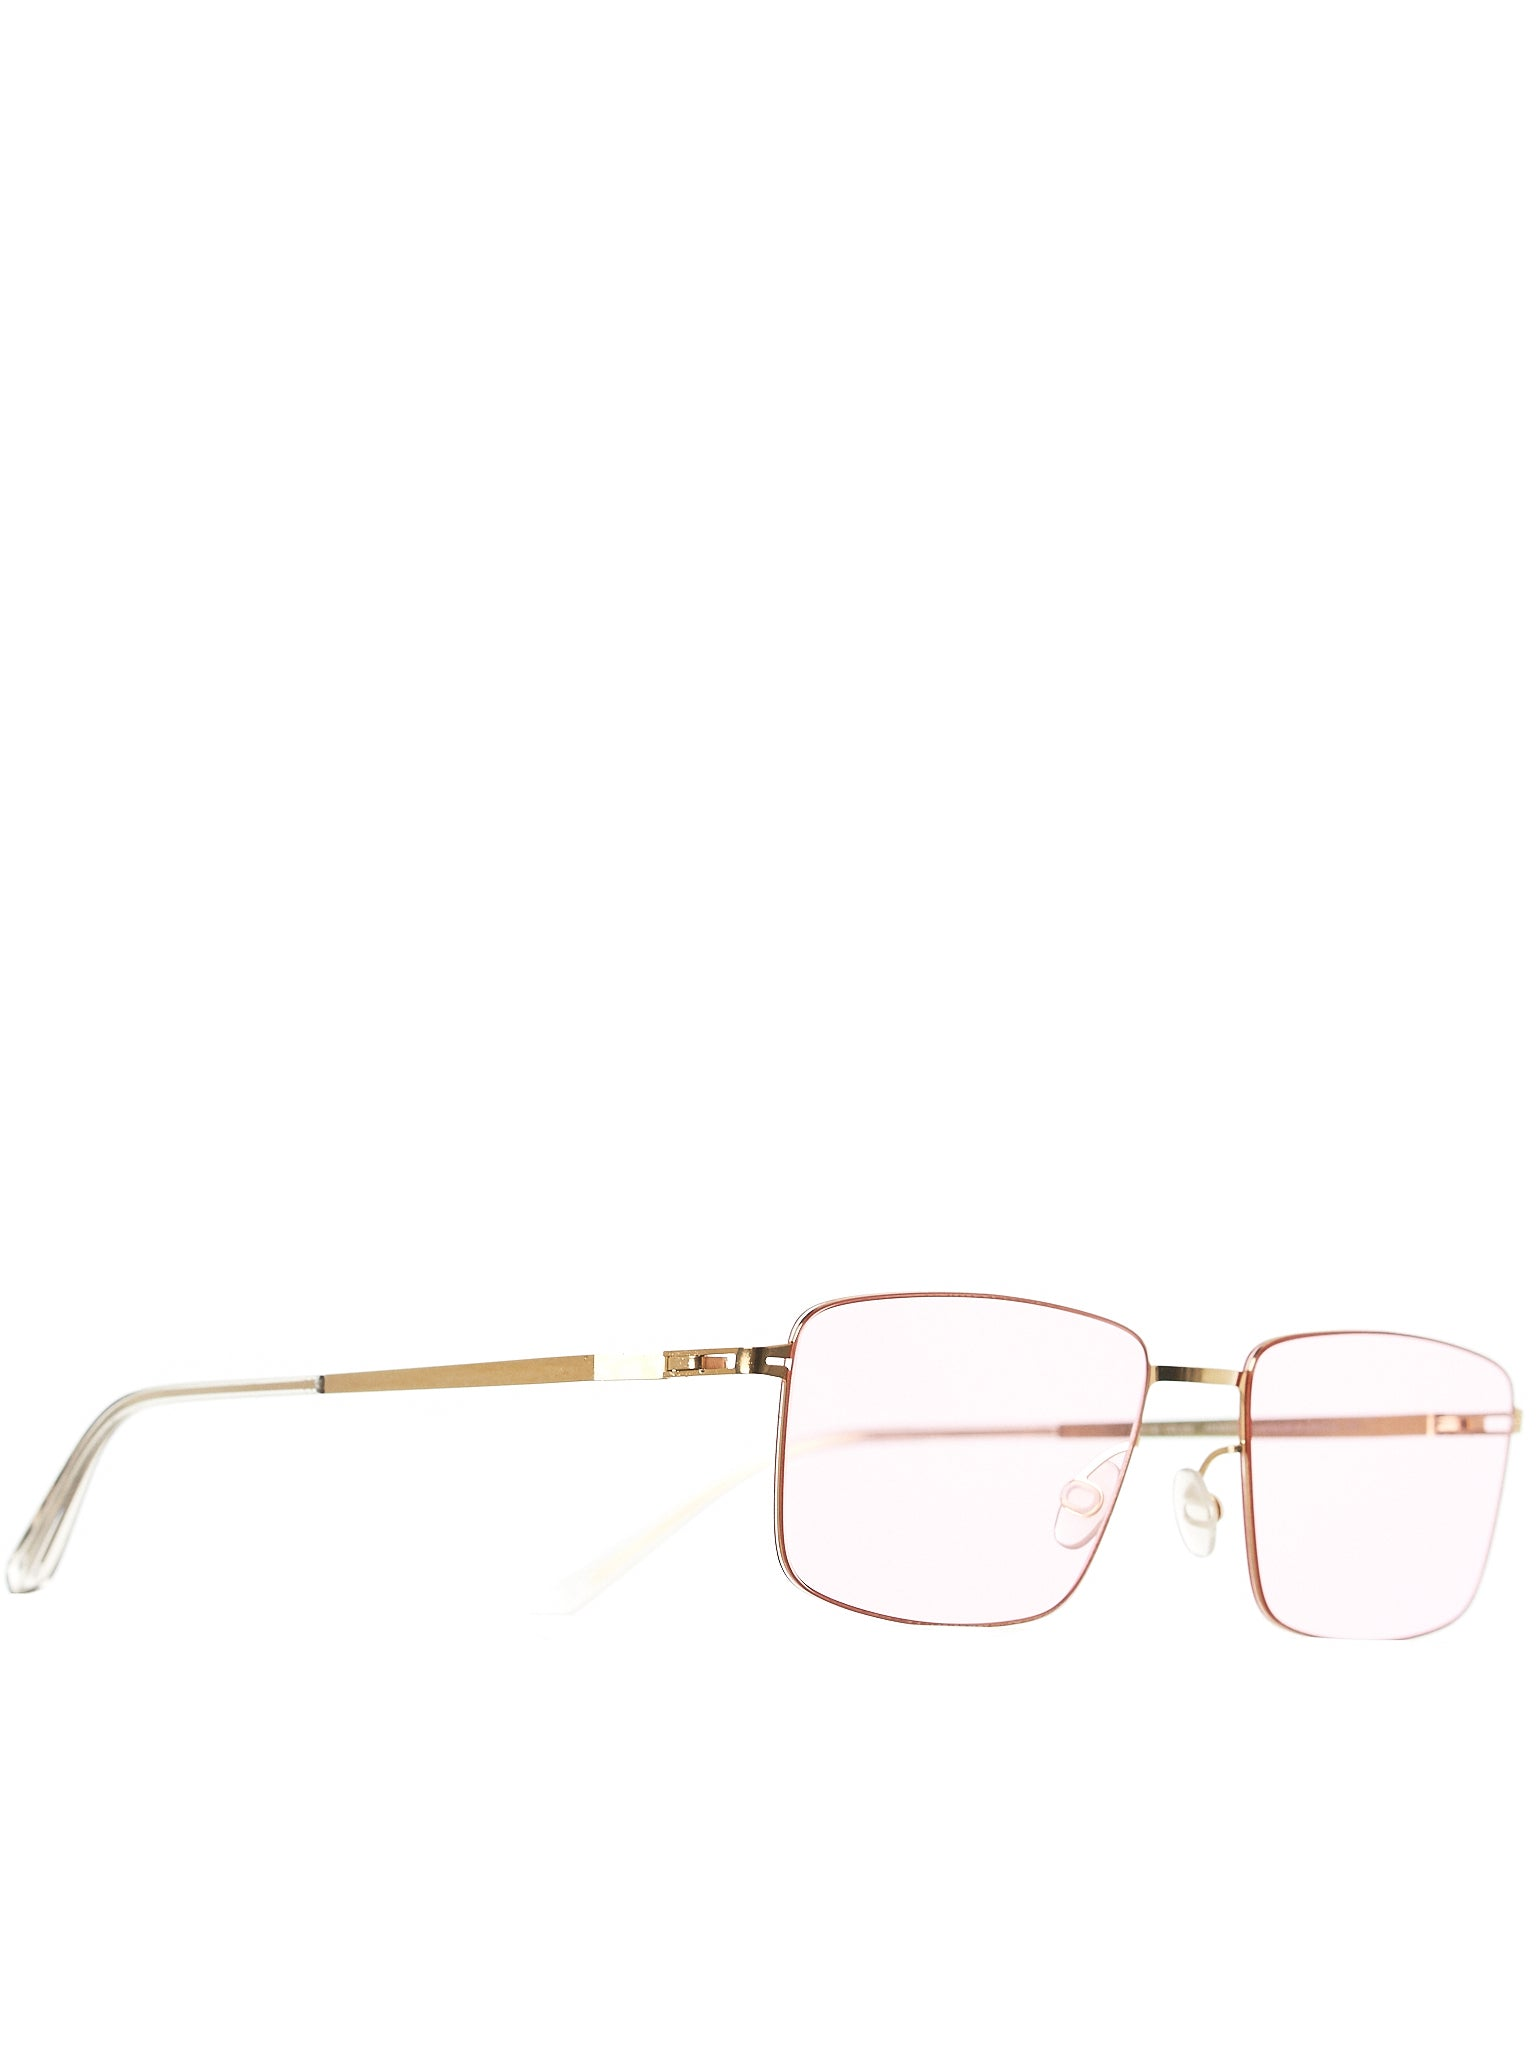 Mykita Sunglasses - Hlorenzo Side